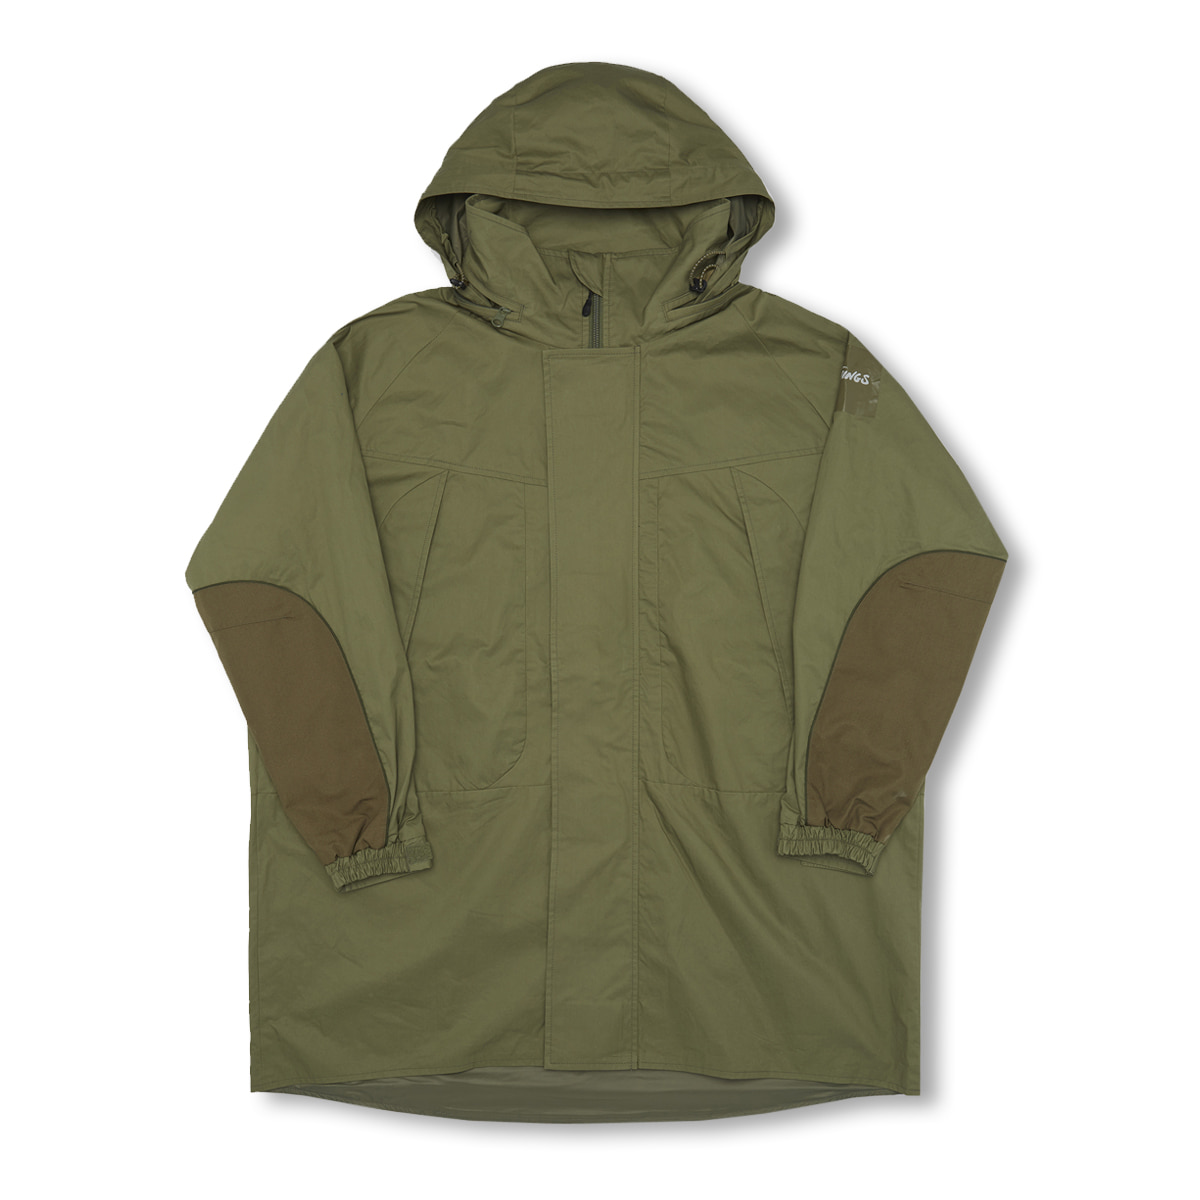 [WILD THINGS] LIGHT MONSTER PARKA 'LEAF'